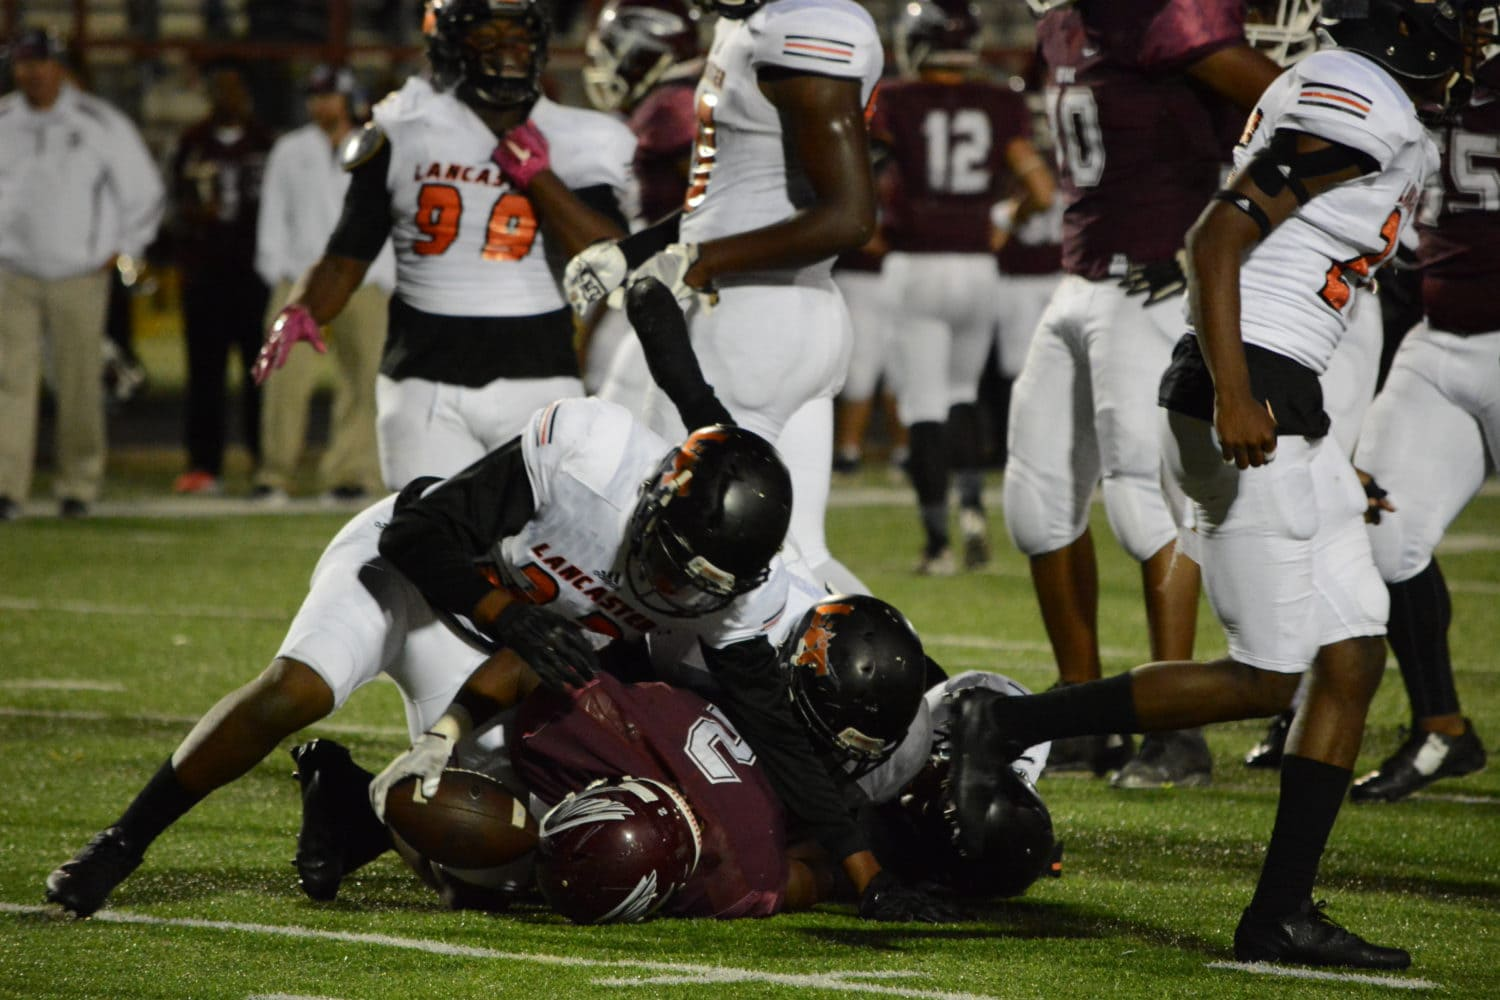 Lancaster High School linebacker Sir Charles Miles-Frost (32) tackles Red Oak running back Blake Sonnier (2) in the 1st half of the Tigers' game against the Hawks at Red Oak's Billy Goodloe Stadium. The Lancaster Tigers beat the Hawks 46-7 at Red Oak's Billy Goodloe Stadium. (Photo by Joshua Bustamante/Tiger Student Media)